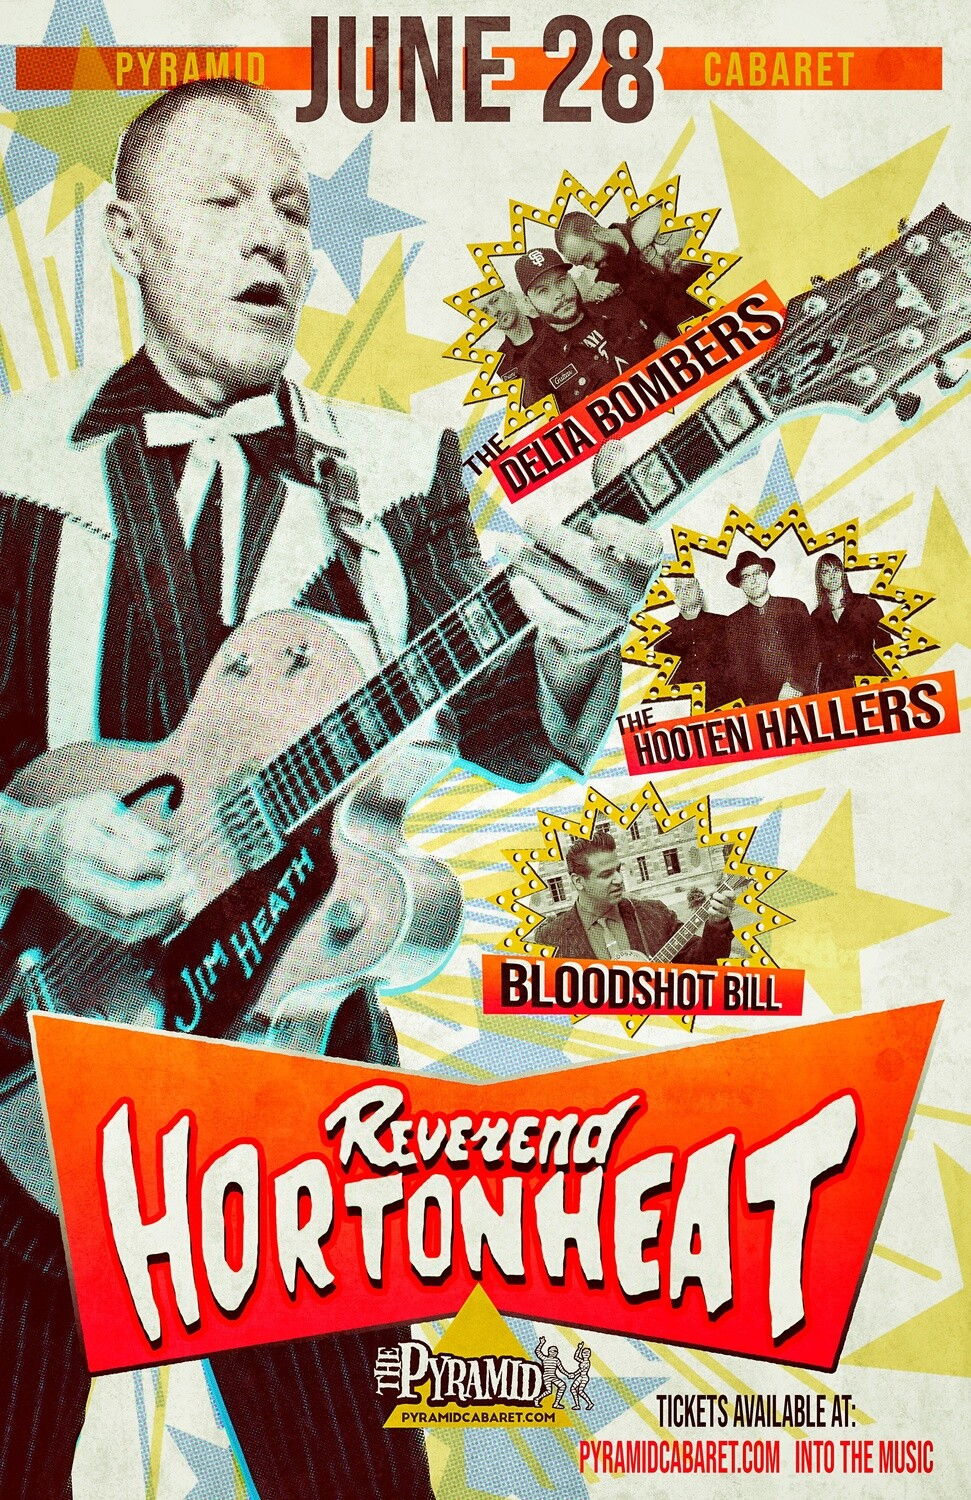 REVEREND HORTON HEAT - JUNE 28 - The Pyramid